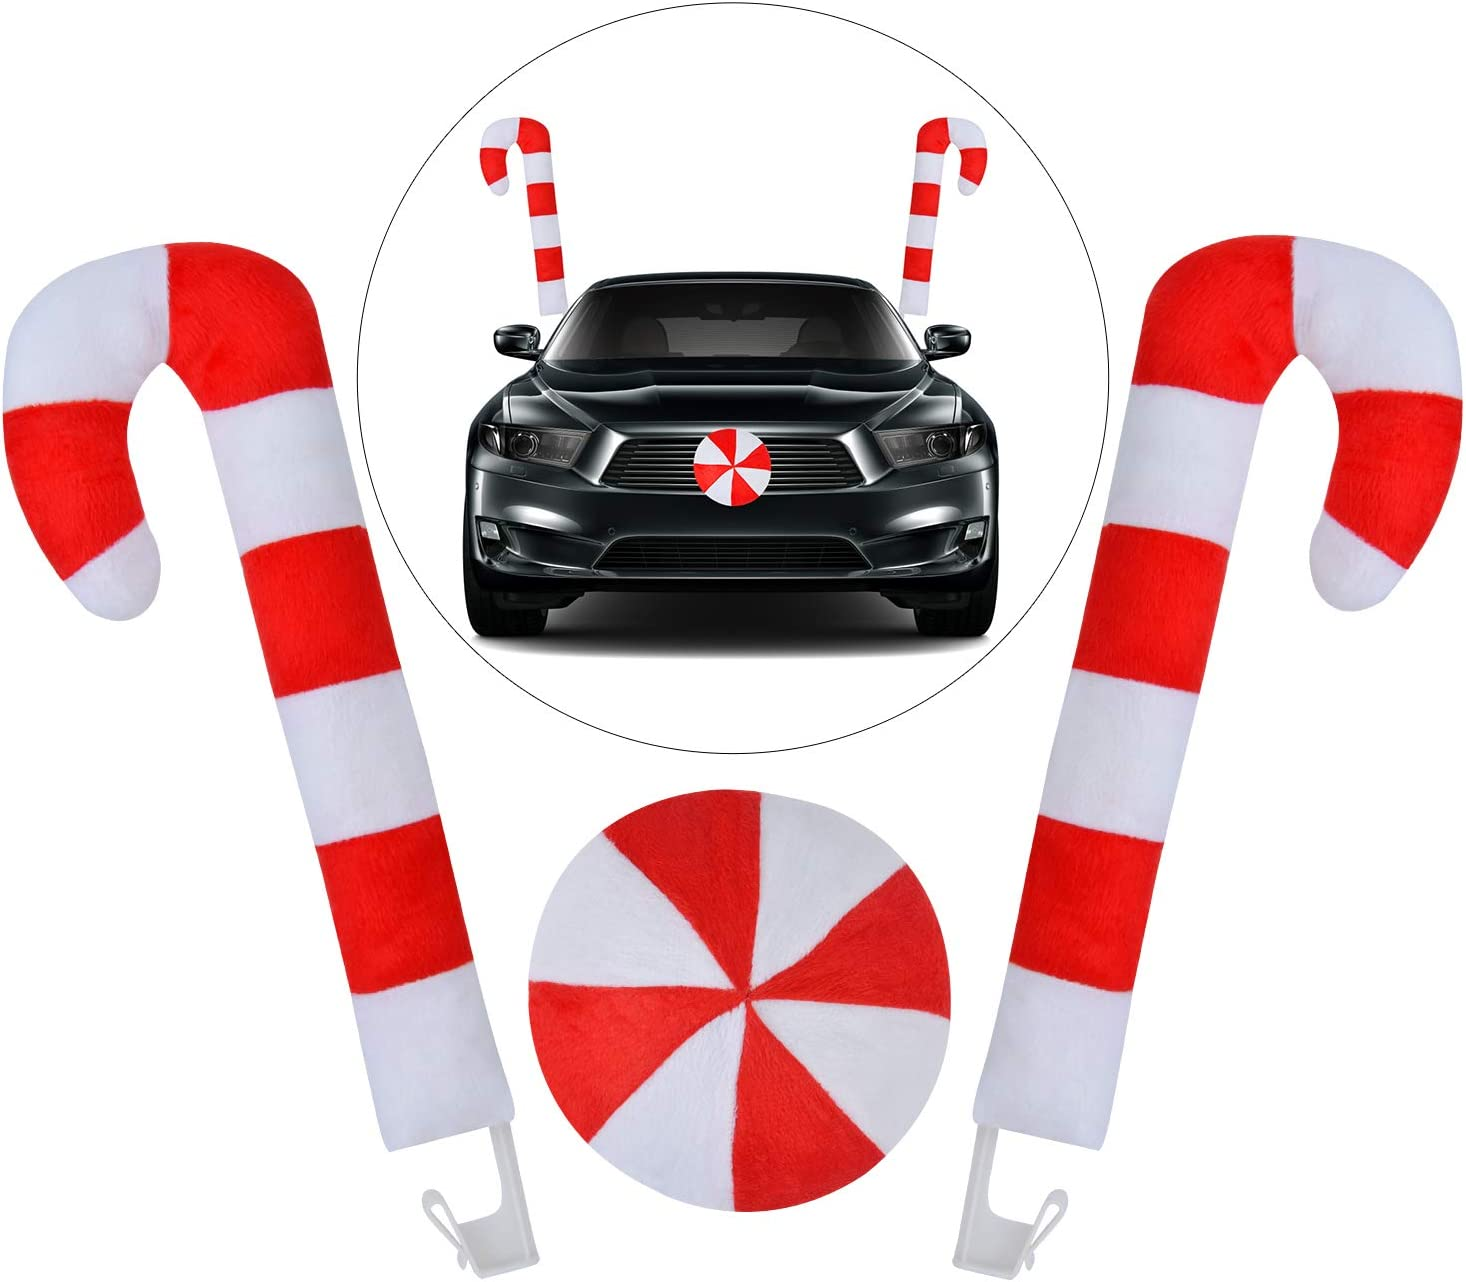 Outgeek Christmas Car Decorations Candy Cane Antler Nose Auto Decor Car Supplies Window Roof-Top & Front Grille Holiday Xmas Vehicle Costume Kit Auto Accessories